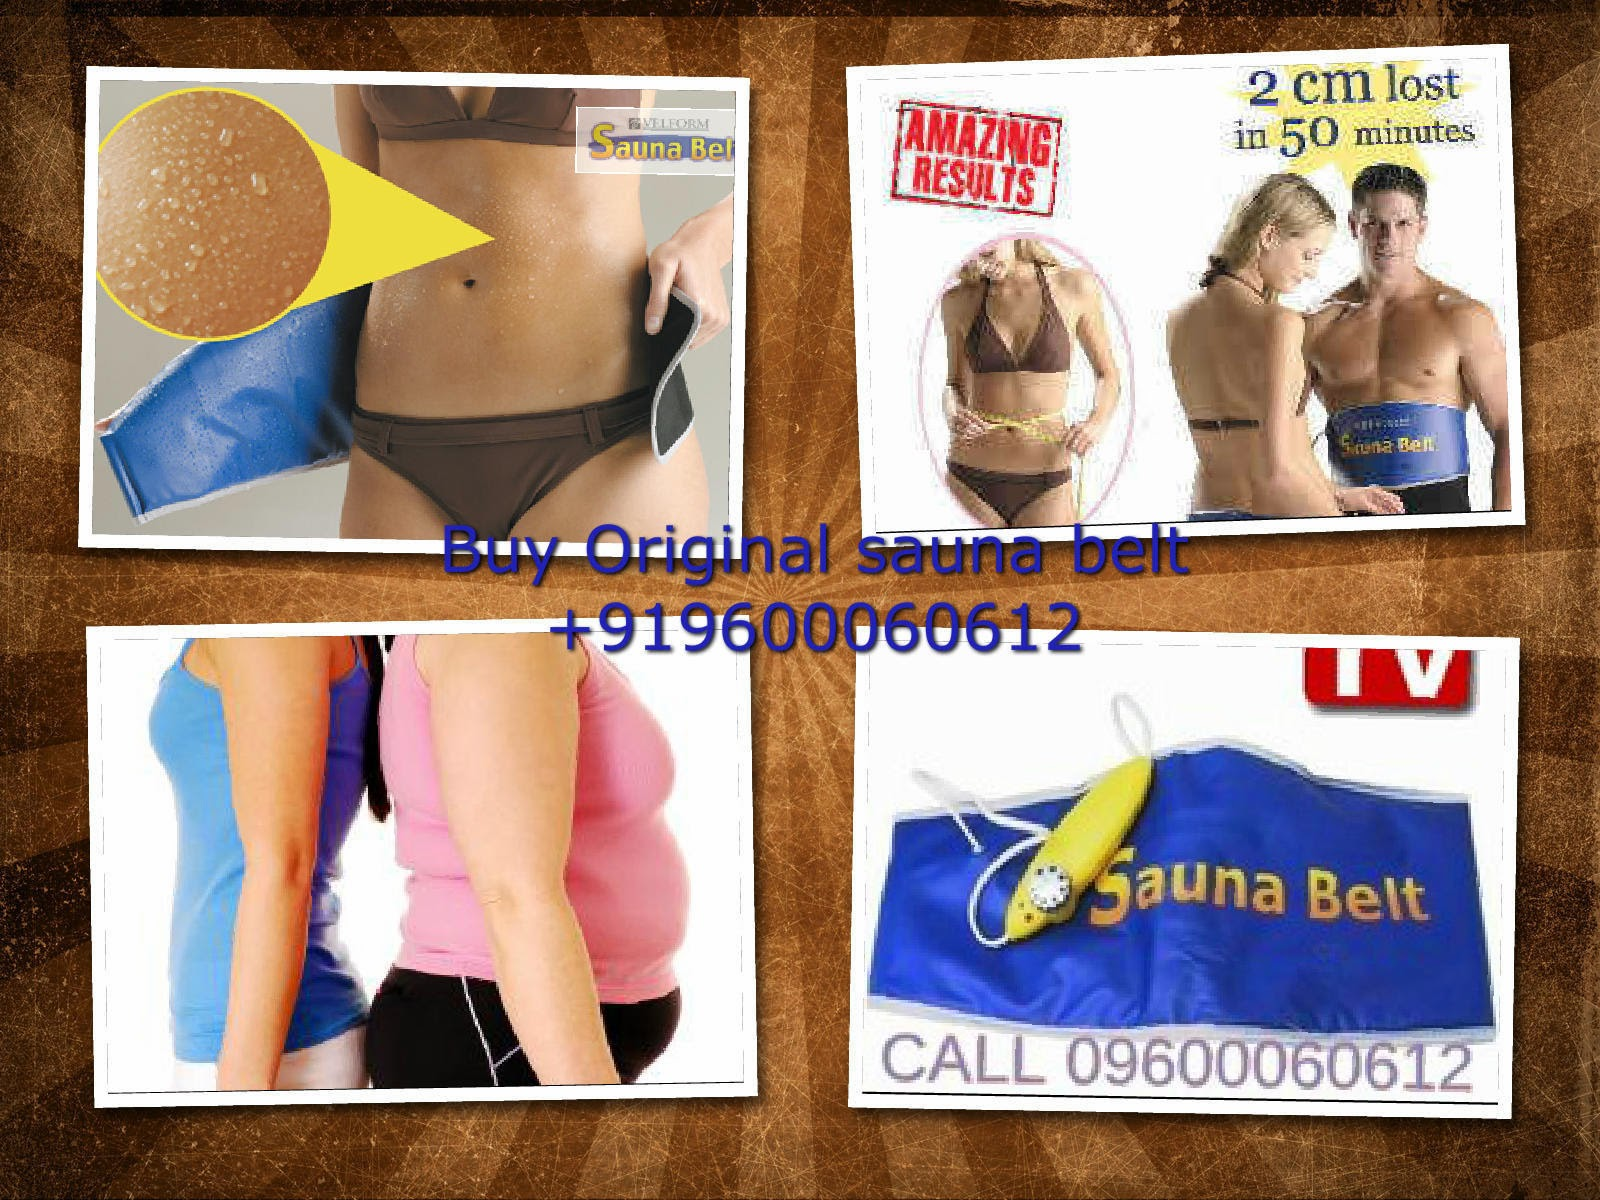 3 in one sauna belt, 3 one sauna belt, 3in1 heating vibrating magnetic sauna belt, ab slimmer sauna belt side effects, ab slimming sauna belt price, ab slimming sauna belt reviews, about sauna slim belt, abtronic x2 sauna belt, are sauna belts effective, benefits of a sauna belt, benefits of sauna slim belt, best sauna belt in india, best sauna belt india, best sauna belt reviews, best sauna belt weight loss, buy a sauna belt, buy a sauna belt in tamilnadu, buy cheap sauna belt, buy sauna belt bangalore, buy sauna belt chandigarh, buy sauna belt chennai, buy sauna belt gurgaon, buy sauna belt in pune, buy sauna belt india, buy sauna belt kolkata, telemall slim sauna belt india, sauna slim belt online shopping india, sauna slim belt suppliers in india, sauna slim belt review india, sauna slim belt rate in india, sauna slim belt india price, sauna slim belt online india, buy sauna slim belt online india, price of sauna slim belt in india, sauna slim belt in india, sauna slim belt price in india, best sauna slim belt india, buy sauna slim belt india, vibrating sauna belt india, vibrating magnetic sauna belt india, velform sauna belt price india, tvc sauna belt india, sauna belt online shopping india, slim sauna belt india, sauna slim belt buy online india, sauna belt india review, sauna belt india price, sauna belt online india, original sauna belt india, sauna belt in india, sauna belt price in india, sauna belt review in india, infrared sauna belt india, velform sauna belt price in india, sauna belt ebay india, sauna belt india com, sauna belt cost india, sauna belt buy india, sauna belt buy online india, sauna slim belt india, sauna belt india, , buy sauna belt mumbai, buy sauna belt online, buy sauna belt online india, buy sauna belt pune, buy sauna belt tamilnadu, buy sauna slim belt, buy sauna slim belt bangalore, buy sauna slim belt chennai, buy sauna slim belt delhi, buy sauna slim belt mumbai, buy sauna slim belt online, buy sauna solution belt, buy slim sauna belt india, buy velform sauna belt, buy vibrating sauna belt, can you lose weight sauna belt, cost of sauna belt in india, digital infraspa sauna belt anp-1d, disadvantages using sauna slim belt, do sauna belt work, do sauna belts actually work, do sauna slimming belts work, does a sauna belt actually work, does a sauna belt really work, does a sauna belt work, does sauna belt help in weight loss, does sauna belt help lose weight, does sauna belt help you lose weight, does sauna belt really work, does sauna belt work, does sauna slim belt work, does slim sauna belt really work, does the sauna slim belt really work, does the slim sauna belt work, e bun sauna belt, effectiveness of a sauna belt, far infrared sauna belt reviews, fir sauna belt reviews, from where to buy sauna belt, harga sauna belt velform, heat sauna belt reviews, how do you use sauna belt, how does a sauna belt work, how does slim sauna belt work, how effective is a sauna belt, how effective is slim sauna belt, how good is sauna slim belt, how sauna slim belt works, how to buy sauna belt, how to buy sauna slim belt, how to order sauna slim belt, how to use a sauna belt, how to use sauna belt video, how to use sauna slim belt, how to use telemall slim sauna belt, how to use vibrating sauna belt, how to wear a sauna belt, india sauna belt, infrared heated sauna belt reviews, infrared sauna belt review, infrared sauna belt reviews, instruction use sauna slim belt, is sauna belt effective, is sauna belt effective for weight loss, is sauna belt good for health, is sauna belt good for weight loss, is sauna belt safe to use, is sauna slim belt effective, is sauna slim belt effective or not, is sauna slim belt really effective, japan sauna pink slimming belt review, japanese sauna belt, jsb sauna belt, jsb sauna slimming belt, jsb sauna slimming belt 3-in-1, jsb sauna slimming belt 3-in-1 heat vibration and magnetic, jsb sauna slimming belt review, l velform sauna belt, lose weight sauna slim belt, magnetic vibra plus sauna belt, magnetic vibro sauna belt, mode d'emploi du sauna belt, mua sauna belt o dau, máy massage sauna 2 in 1 fitness belt, neoprene sauna belt reviews, nokia sauna belt, notice d'utilisation sauna belt, online order sauna belt, online shopping for sauna belt, online shopping sauna slim belt, original sauna belt chennai, original sauna belt price, price of sauna belt, price of sauna belt in india, price of sauna belt in pune, price of sauna slim belt, purchase sauna slim belt, review of slim sauna belt, reviews about sauna belt, reviews for sauna belt, reviews of sauna belt, reviews of sauna slim belt, reviews on the sauna belt, sauna ab belt, sauna ab slimmer slim fit belt, sauna ab slimmer slim fit belt reviews, sauna belly belt, sauna belt, sauna belt 2 1, sauna belt 2 in 1, sauna belt 2007, sauna belt 2009, sauna belt 2in1, sauna belt 3 en 1, sauna belt 3 in 1, sauna belt ab slim fit warranty, sauna belt advantages and disadvantages, sauna belt after pregnancy, sauna belt ahmedabad, sauna belt are effective or not, sauna belt as seen on tv, sauna belt at hyderabad, sauna belt available chennai, sauna belt available hyderabad, sauna belt available in chennai, sauna belt avon, sauna belt bangalore, sauna belt before after, sauna belt belly, sauna belt benefits, sauna belt best, sauna belt best buy, sauna belt bhopal, sauna belt bhubaneswar, sauna belt bodybuilding, sauna belt burns, sauna belt buy, sauna belt buy bangalore, sauna belt buy online, sauna belt chandigarh, sauna belt chennai, sauna belt chennai address, sauna belt china, sauna belt comment l'utiliser, sauna belt comments, sauna belt commercial, sauna belt complaints, sauna belt contact number, sauna belt cost, sauna belt cost in india, sauna belt dealer in delhi, sauna belt dealer in kolkata, sauna belt dealers bangalore, sauna belt dealers chennai, sauna belt dealers hyderabad, sauna belt dealers in bangalore, sauna belt dealers in chennai, sauna belt dealers in hyderabad, sauna belt dealers in mumbai, sauna belt deals, sauna belt delhi, sauna belt diet plan, sauna belt disadvantages, sauna belt do they work, sauna belt does it help, sauna belt does it work, sauna belt ebay, sauna belt effective, sauna belt effective not, sauna belt effects, sauna belt elite, sauna belt exercise, sauna belt feedback, sauna belt flipkart, sauna belt for abs, sauna belt for arms, sauna belt for back pain, sauna belt for men, sauna belt for sale, sauna belt for stomach, sauna belt for thighs, sauna belt forum, sauna belt funciona o no, sauna belt gel, sauna belt get heating pad free, sauna belt goa, sauna belt good, sauna belt good bad, sauna belt good not, sauna belt good use, sauna belt good you, sauna belt guide, sauna belt gurgaon, sauna belt heating pad belt, sauna belt home shop 18, sauna belt homeshop18, sauna belt how does it work, sauna belt how it works, sauna belt how to use, sauna belt how to use video, sauna belt hyderabad, sauna belt hyderabad price, sauna belt in bangalore, sauna belt in canada, sauna belt in chennai, sauna belt in dehradun, sauna belt in delhi, sauna belt in hyderabad, sauna belt in kolkata, sauna belt in mumbai, sauna belt in nagerkoil, sauna belt in navi mumbai, sauna belt in pune, sauna belt in tamilnadu, , stomach slimming belt in india, stomach belt price india, abdominal belt price india, abdominal belt online india, stomach belt in india, abdominal belt in india, stomach slimming belt in india, stomach belt after delivery india, stomach belt after delivery india, abdominal belt price india, stomach belt price india, abdominal belt after pregnancy india, abdominal belt post pregnancy india, abdominal belt online india, tummy belt online india, tummy tuck belt india online, buy abdominal belt online india, abdominal belt in india, tummy belt in india, belly belt in india, stomach belt in india, abdominal belt price in india, abdominal belt manufacturer in india, best abdominal belt in india, buy abdominal belt in india, abdominal toning belt india, abdominal support belt india, abdominal belt after c section india, abdominal belt price india, abdominal belt after pregnancy india, abdominal belt post pregnancy india, postpartum abdominal belt india, abdominal belt online india, buy abdominal belt online india, abdominal belt manufacturer in india, abdominal belt in india, abdominal belt price in india, abdominal belt manufacturer in india, best abdominal belt in india, buy abdominal belt in india, abdominal belt after delivery in india, abdominal belt after pregnancy in india, buy abdominal belt online in india, abdominal belt after delivery in india, abdominal belt after c section india, buy abdominal belt online india, best abdominal belt in india, buy abdominal belt in india, abdominal belt after pregnancy india, abdominal belt after c section india, abdominal belt after delivery in india, stomach belt india, abdominal belt india, stomach belt price india, stomach belt after delivery india, stomach slimming belt in india, abdominal belt india, tummy belt india, belly belt india, stomach belt india, abdominal belt price india, abdominal belt online india, abdominal support belt india, abdominal toning belt india, postpartum abdominal belt india, abdominal belt india, abdominal belt price india, abdominal belt online india, abdominal support belt india, abdominal toning belt india, postpartum abdominal belt india, abdominal belt manufacturer in india, abdominal belt after pregnancy india, abdominal belt post pregnancy india, abdominal belt after c section india, belly belt after c section in india, belly reducer belt in india, postpartum belly belt india, belly belt price in india, post pregnancy belly belt india, belly dance belt online india, buy belly belt online india, belly belt in india, belly band in india, belly belt price in india, belly reducer belt in india, postpartum belly belt in india, post pregnancy belly belt in india, belly fat burning belt in india, belly belt after c section in india, belly burner weight loss belt in india, belly dance belt online india, buy belly belt online india, belly belt india, belly band india, abdominal belt india, postpartum belly belt india, belly belt price in india, post pregnancy belly belt india, belly dance belt online india, belly reducer belt in india, buy belly belt online india, belly burner weight loss belt in india, sauna belt india pune, sauna belt india.com, sauna belt indiatimes, sauna belt instruction manual, sauna belt instructions, sauna belt is it effective, sauna belt is it good, sauna belt jaipur, sauna belt jalandhar, sauna belt kanpur, sauna belt kerala, sauna belt kolkata, sauna belt kolkata price, sauna belt legs, sauna belt living social, sauna belt lose weight, sauna belt lucknow, sauna belt ludhiana, sauna belt magnetic, sauna belt manual, sauna belt manufacturer, sauna belt manufacturer delhi, sauna belt manufacturers india, sauna belt meerut, sauna belt meerut pune, sauna belt men, sauna belt mouthshut, sauna belt mumbai, sauna belt murah, sauna belt mysore, sauna belt nagerkoil, sauna belt nagpur, sauna belt nashik, sauna belt navi mumbai, sauna belt new delhi, sauna belt noida, sauna belt of asian sky shop, sauna belt official site, sauna belt on breast, sauna belt on chest, sauna belt online, sauna belt online purchase, sauna belt online shopping, sauna belt order, sauna belt original, sauna belt osim, sauna belt patna, sauna belt price, sauna belt price bahrain, sauna belt price bangalore, sauna belt price chennai, sauna belt price delhi, sauna belt price hyderabad, sauna belt price in bangalore, sauna belt price in chennai, sauna belt price in delhi, sauna belt price in hyderabad, sauna belt price in kolkata, sauna belt price in mumbai, sauna belt price in nagerkoil, sauna belt price in pune, sauna belt price kolkata, sauna belt price list, sauna belt price mumbai, sauna belt price nagerkoil, sauna belt price pune, sauna belt price review, sauna belt price tamilnadu, sauna belt pro 3, sauna belt pros cons, sauna belt pune, sauna belt pune price, sauna belt punjab, sauna belt rate, sauna belt really useful, sauna belt really works, sauna belt reduce weight, sauna belt results, sauna belt retailers in mumbai, sauna belt review, sauna belt review india, sauna belt review mouthshut, sauna belt review yahoo, sauna belt reviews, sauna belt reviews india, sauna belt shop in delhi, sauna belt shop in kolkata, sauna belt shop in mumbai, sauna belt shops bangalore, sauna belt shops in bangalore, sauna belt shops in hyderabad, sauna belt showroom in chennai, sauna belt side effects, sauna belt side effects health, sauna belt side effects men, sauna belt side effects women, sauna belt stores bangalore, sauna belt stores hyderabad, sauna belt stores in bangalore, sauna belt stores in hyderabad, sauna belt tamilnadu, sauna belt telebrands, sauna belt telemall, sauna belt teleseen marketing, sauna belt teleshopping, sauna belt tips, sauna belt to lose weight, sauna belt to reduce tummy, sauna belt trim jeans, sauna belt truth, sauna belt tvc, sauna belt tvm, sauna belt types, sauna belt use, sauna belt use video, sauna belt user guide, sauna belt user manual, sauna belt user review, sauna belt user reviews, sauna belt vadodara, sauna belt velform, sauna belt velform instructions, sauna belt velform murah, sauna belt velform reviews, sauna belt vibrating, sauna belt vibration india, sauna belt video, sauna belt vijayawada, sauna belt website, sauna belt weight loss, sauna belt weight loss review, sauna belt while exercising, sauna belt wholesale india, sauna belt wiki, sauna belt wikipedia, sauna belt with vibration, sauna belt work, sauna belt yahoo, sauna belt yahoo answers, sauna belt yoko, sauna belt youtube, sauna belt- how effective, sauna belts do they work, sauna belts for arms, sauna belts for weight loss, sauna belts weight loss india, sauna belts work, sauna fit belt, sauna fit belt price, sauna fit magnetic belt, sauna heat belt, sauna massage 2in1 fitness belt opinie, sauna massage belt, sauna massage belt price, sauna massage belt review, sauna massage belt reviews, sauna massager 2 in 1 fitness belt, sauna plus belt, sauna pro 3 belt, sauna pro 3 personal sauna belts, sauna pro slim belt, sauna slim, sauna slim belt, sauna slim belt - is it effective, sauna slim belt ad, sauna slim belt advantages, sauna slim belt agra, sauna slim belt ahmedabad, sauna slim belt arms, sauna slim belt asian sky shop, sauna slim belt bangalore, sauna slim belt benefits, sauna slim belt bhopal, sauna slim belt bhubaneswar, sauna slim belt buy online, sauna slim belt cash on delivery, sauna slim belt chandigarh, sauna slim belt chennai, sauna slim belt cochin, sauna slim belt coimbatore, sauna slim belt complaints, sauna slim belt contact, sauna slim belt cost, sauna slim belt dealers delhi, sauna slim belt dealers in chennai, sauna slim belt dealers in delhi, sauna slim belt delhi, sauna slim belt demo, sauna slim belt diet, sauna slim belt disadvantages, sauna slim belt does it really works, sauna slim belt does work, sauna slim belt ebay, sauna slim belt effective not, sauna slim belt erode, sauna slim belt for arms, sauna slim belt for weight loss, sauna slim belt goa, sauna slim belt good, sauna slim belt gurgaon, sauna slim belt home delivery, sauna slim belt hyderabad, sauna slim belt hyderabad address, sauna slim belt in bangalore, sauna slim belt in bhopal, sauna slim belt in bhubaneswar, sauna slim belt in chandigarh, sauna slim belt in chennai, sauna slim belt in delhi, sauna slim belt in hyderabad, sauna slim belt in hyderabad address, sauna slim belt in madurai, sauna slim belt in mumbai, sauna slim belt in pune, sauna slim belt instructions, sauna slim belt is effective or not, sauna slim belt jaipur, sauna slim belt kerala, sauna slim belt kolkata, sauna slim belt madurai, sauna slim belt manual, sauna slim belt mumbai, sauna slim belt mysore, sauna slim belt nagpur, sauna slim belt noida, sauna slim belt online, sauna slim belt online purchase, sauna slim belt online shopping, sauna slim belt order, sauna slim belt pondicherry, sauna slim belt price, sauna slim belt price bangalore, sauna slim belt price chennai, sauna slim belt price delhi, sauna slim belt price in bangalore, sauna slim belt price in chennai, sauna slim belt price in delhi, sauna slim belt price in mumbai, sauna slim belt price mumbai, sauna slim belt price pune, sauna slim belt pune, sauna slim belt really effective, sauna slim belt results, sauna slim belt reviews, sauna slim belt salem, sauna slim belt shimoga, sauna slim belt shop bangalore, sauna slim belt shop in chennai, sauna slim belt shop in delhi, sauna slim belt side effects, sauna slim belt suppliers, sauna slim belt suppliers delhi, sauna slim belt suppliers in delhi, sauna slim belt tamilnadu, sauna slim belt telebrands, sauna slim belt telemall, sauna slim belt teleshopping, sauna slim belt tirunelveli, sauna slim belt trichy, sauna slim belt trivandrum, sauna slim belt types, sauna slim belt use, sauna slim belt user manual, sauna slim belt user reviews, sauna slim belt vibration, sauna slim belt video, sauna slim belt vijayawada, sauna slim belt wiki, sauna slim belt with vibration, sauna slim belt works, sauna slim belt yoko, sauna slim belt-how to use, sauna slim fit, sauna slim fit belt, sauna slim fit review, sauna slim fit reviews, sauna slim magnetic belt, sauna slim reviews, sauna slimming belt body wrap, sauna slimming pants, sauna slimming shorts, sauna slimming wrap, sauna solution belt, sauna solution belt review, sauna solution belt reviews, sauna steam belt, sauna steam o belt forum, sauna stomach belt, sauna thigh belts, sauna trim belt, sauna vibrating belt, sauna vibrating belt bangalore, sauna vibrating belt india, sauna vibrating belt price, sauna vibrating belt review, sauna waist belt, sauna waist belt reviews, sauna wrap belt, saunabelt.biz, saunabelt.org, side effects of a sauna belt, side effects of sauna slim belt, side effects of vibrating sauna belt, side effects using sauna slim belt, side effects vibrating sauna belt, slim sauna belt bangalore, slim sauna belt chandigarh, slim sauna belt ebay, slim sauna belt homeshop18, slim sauna belt hyderabad, slim sauna belt in bangalore, slim sauna belt in chennai, slim sauna belt in delhi, slim sauna belt in kolkata, slim sauna belt jaipur, slim sauna belt kolkata, slim sauna belt mumbai, slim sauna belt noida, slim sauna belt price delhi, slim sauna belt pune, slim sauna belt reviews, slim sauna belt shop in kolkata, slim sauna belt vadodara, slim sauna india, slimming belt digital sauna pro 3 1, slimming belt with digital sauna pro 3 in 1, slimming sauna shorts reviews, store can buy sauna belt, telebrand sauna belt price, telemall sauna belt india, telemall sauna belt price, telemall slim sauna belt, telemall slim sauna belt review, telemall slim sauna belt video, tempo slim sauna belt reviews, therasage sauna belt reviews, tvm sauna belt bangalore, use of sauna slim belt, use vibrating sauna belt, velform sauna belt does it work, velform sauna belt effective, velform sauna belt mode d'emploi, velform sauna belt powered heating pad, velform sauna belt price, velform sauna belt price in pune, velform sauna belt price pune, velform sauna belt results, velform sauna belt review, velform sauna belt reviews, velform sauna belt rm, velform sauna belt weight loss, velform sauna belt where buy, velform sauna belt youtube, velform sauna massage belt price, velform sauna massage belt reviews, velform sauna slim belt, vibrating magnetic & heating sauna belt, vibrating magnetic sauna belt, vibrating magnetic sauna belt review, vibrating sauna belt bangalore, vibrating sauna belt reviews, vibrating sauna belt tummy trimmer, vibrating sauna slim belt, want buy sauna belt, weight loss sauna slimming belt reviews, weight reducing sauna slim belt, what are sauna belts, what are the side effects of sauna belt, what are the side effects of sauna slim belt, what are the side effects of using sauna belt, what does a sauna belt do, what does the sauna belt do, what is a sauna belt, what is sauna belt, what is sauna slim belt, what is the best sauna belt, what is the cost of sauna belt, what is the price of sauna belt, what is the sauna belt, what is the side effect of sauna belt, what is the use of sauna belt, where can i buy a sauna belt, where can i buy the sauna belt, where can i purchase a sauna belt, where i can buy sauna belt, where to buy sauna belt, where to buy sauna belt hyderabad, where to buy sauna belt in bangalore, where to buy sauna belt in delhi, where to buy sauna belt in mumbai, where to buy sauna slim belt, where to buy sauna slim belt in chennai, where to buy velform sauna belt, will i lose weight with a sauna belt, www.sauna slim belt.com